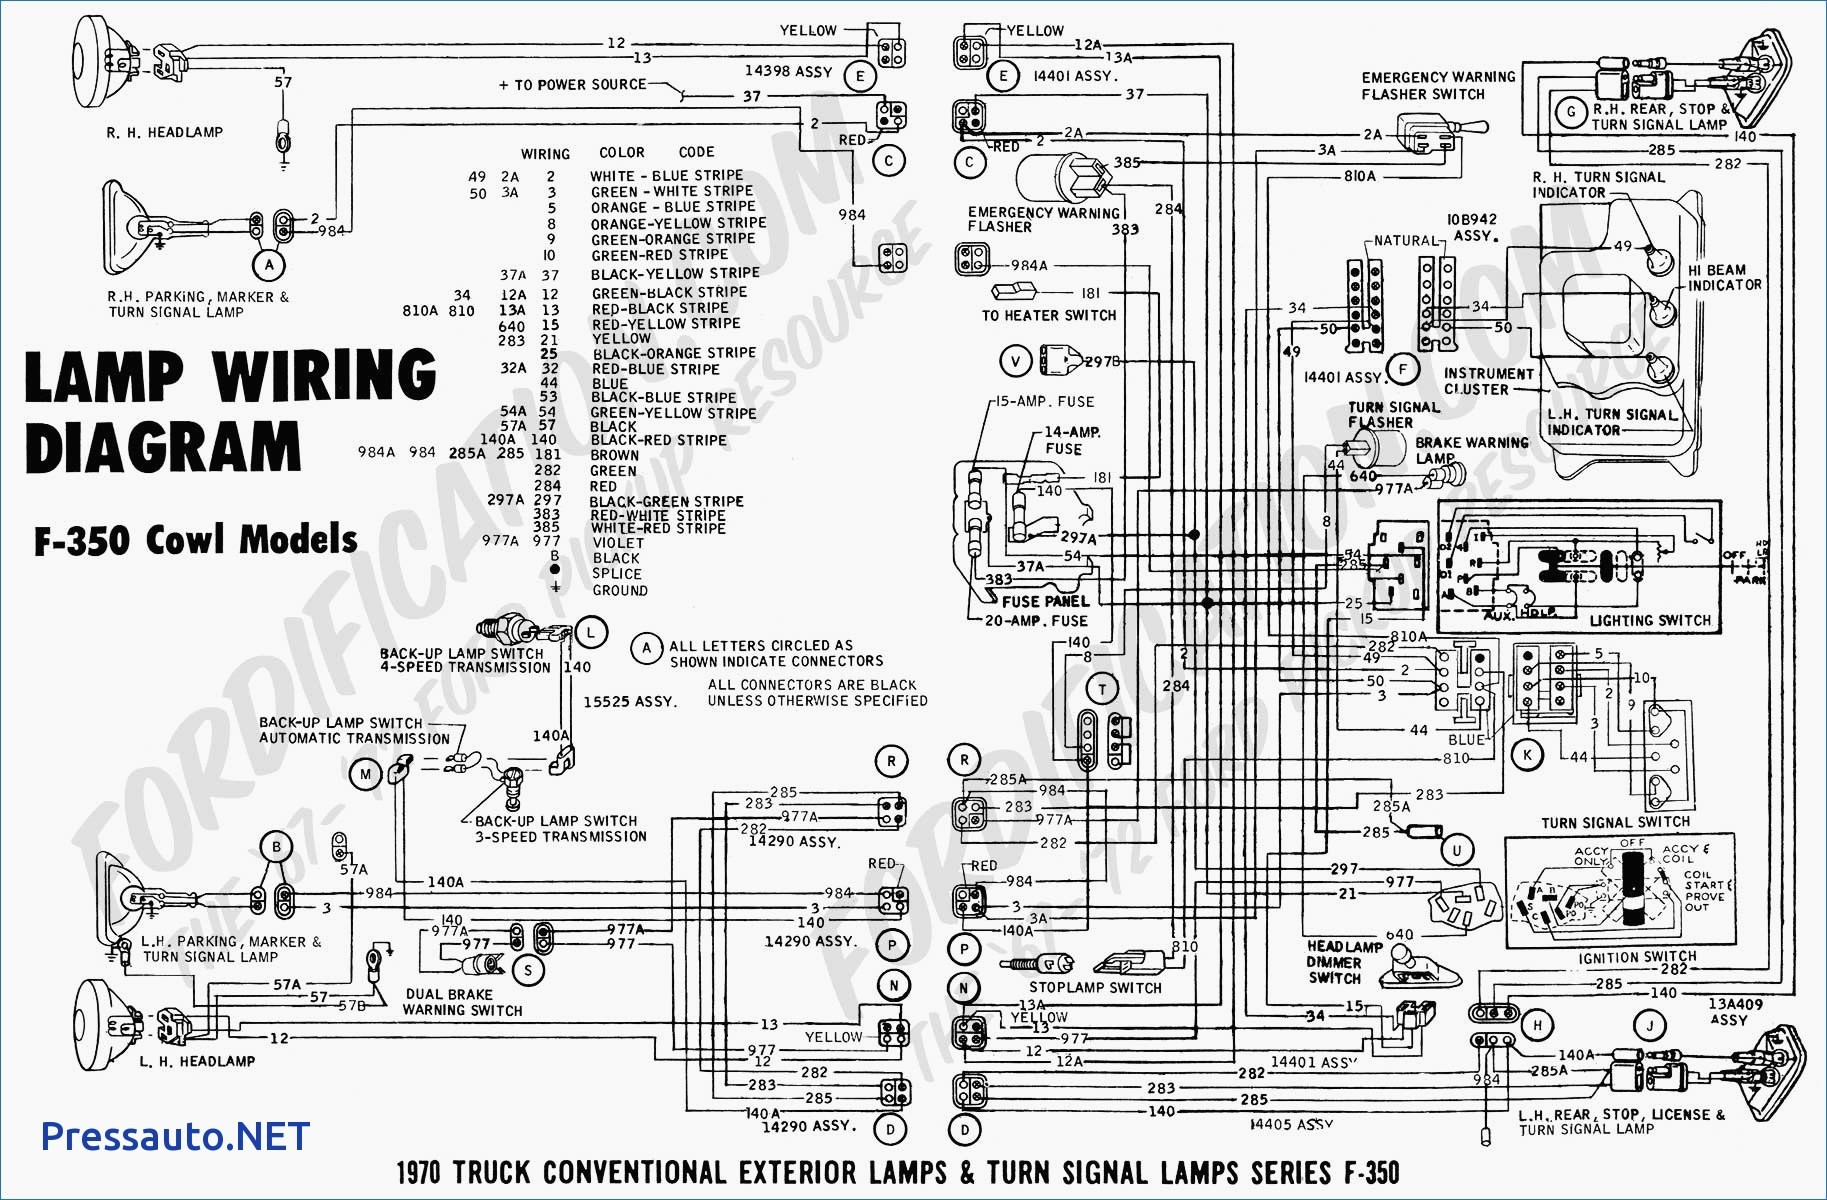 Ford Ranger 4 0 Engine Diagram Reinvent Your Wiring 2005 1997 0l Rh Aiandco Co 1999 Explorer V6 2002